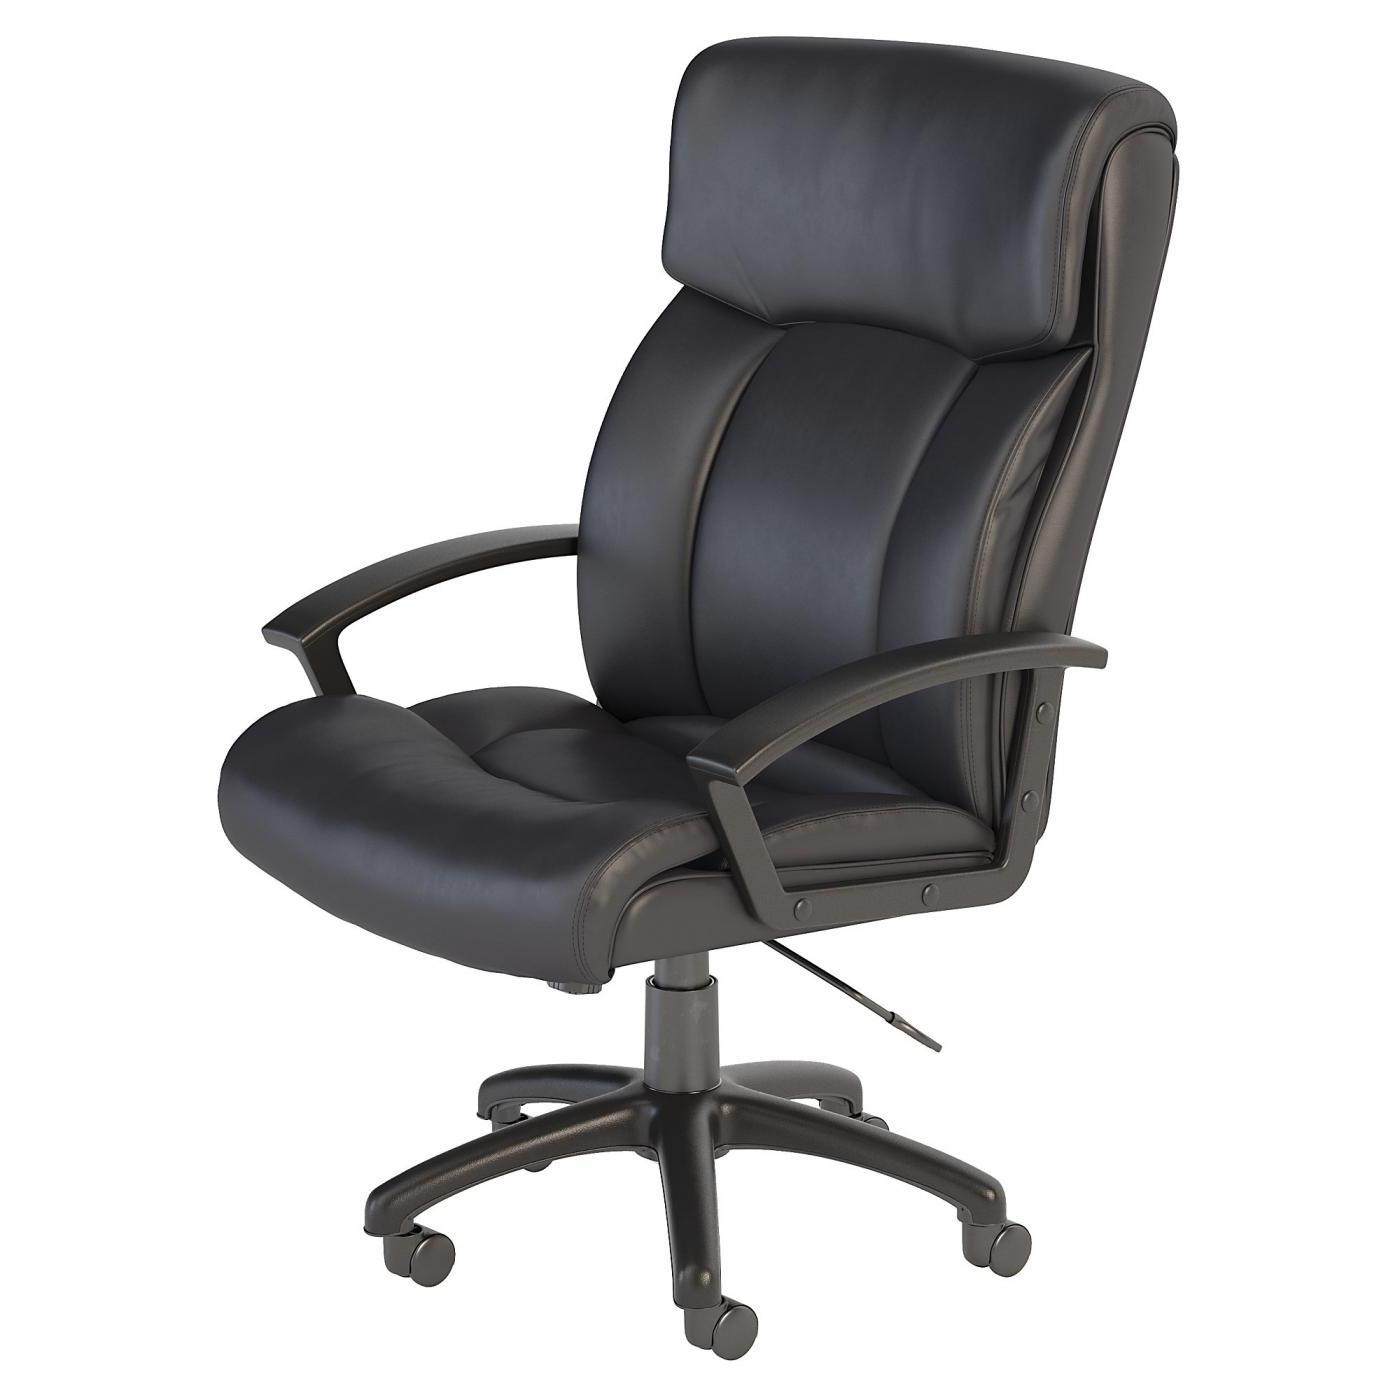 <font color=#c60><b>BUSH BUSINESS FURNITURE STANTON PLUS MID BACK LEATHER EXECUTIVE OFFICE CHAIR. FREE SHIPPING</font></b> </font></b></font></b>